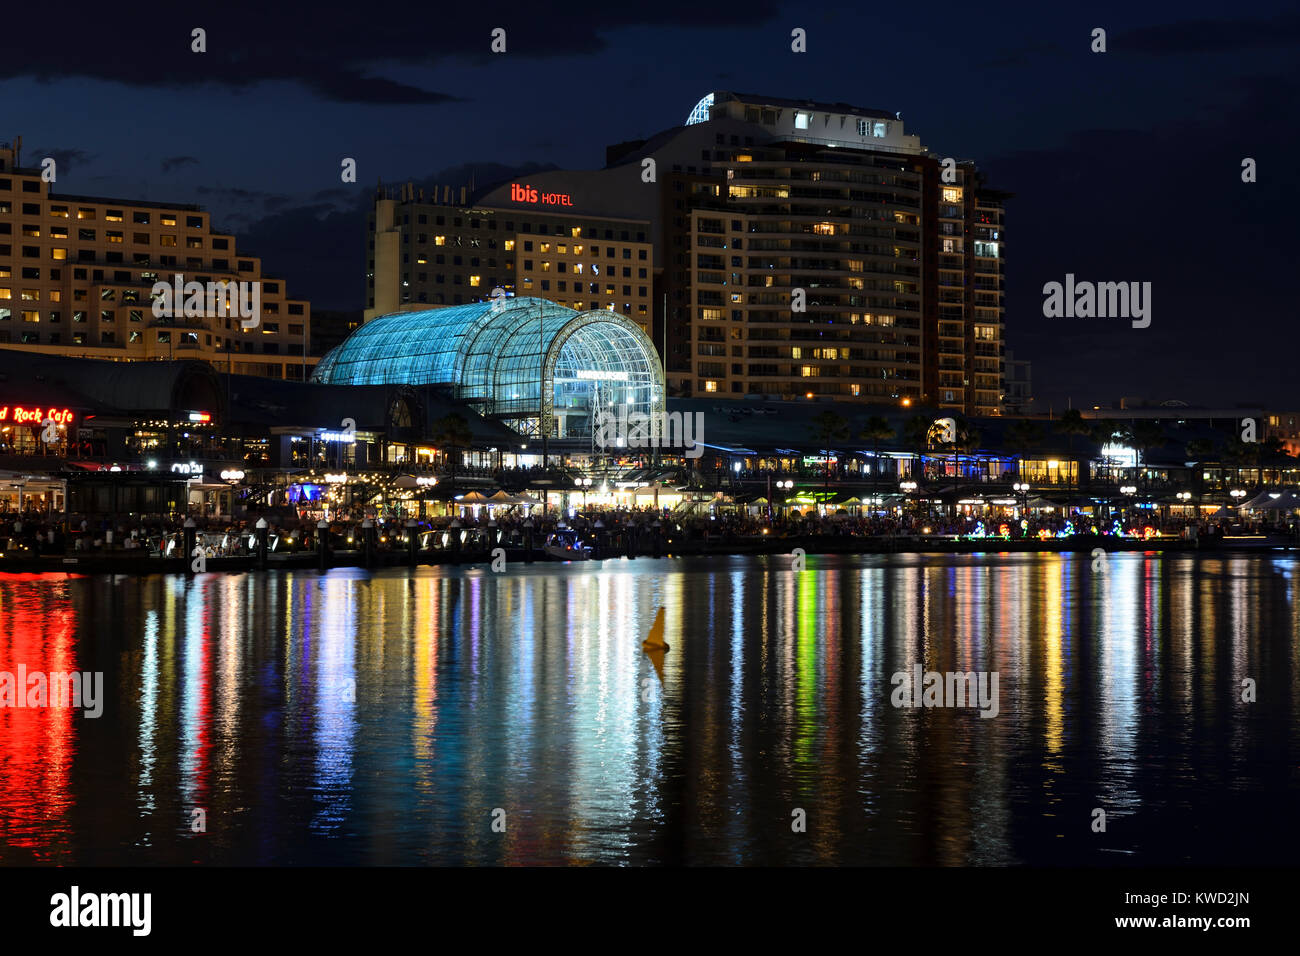 Sydney International Conference Centre and Harbourside Shopping Centre in Darling Harbour by night - Sydney, New - Stock Image